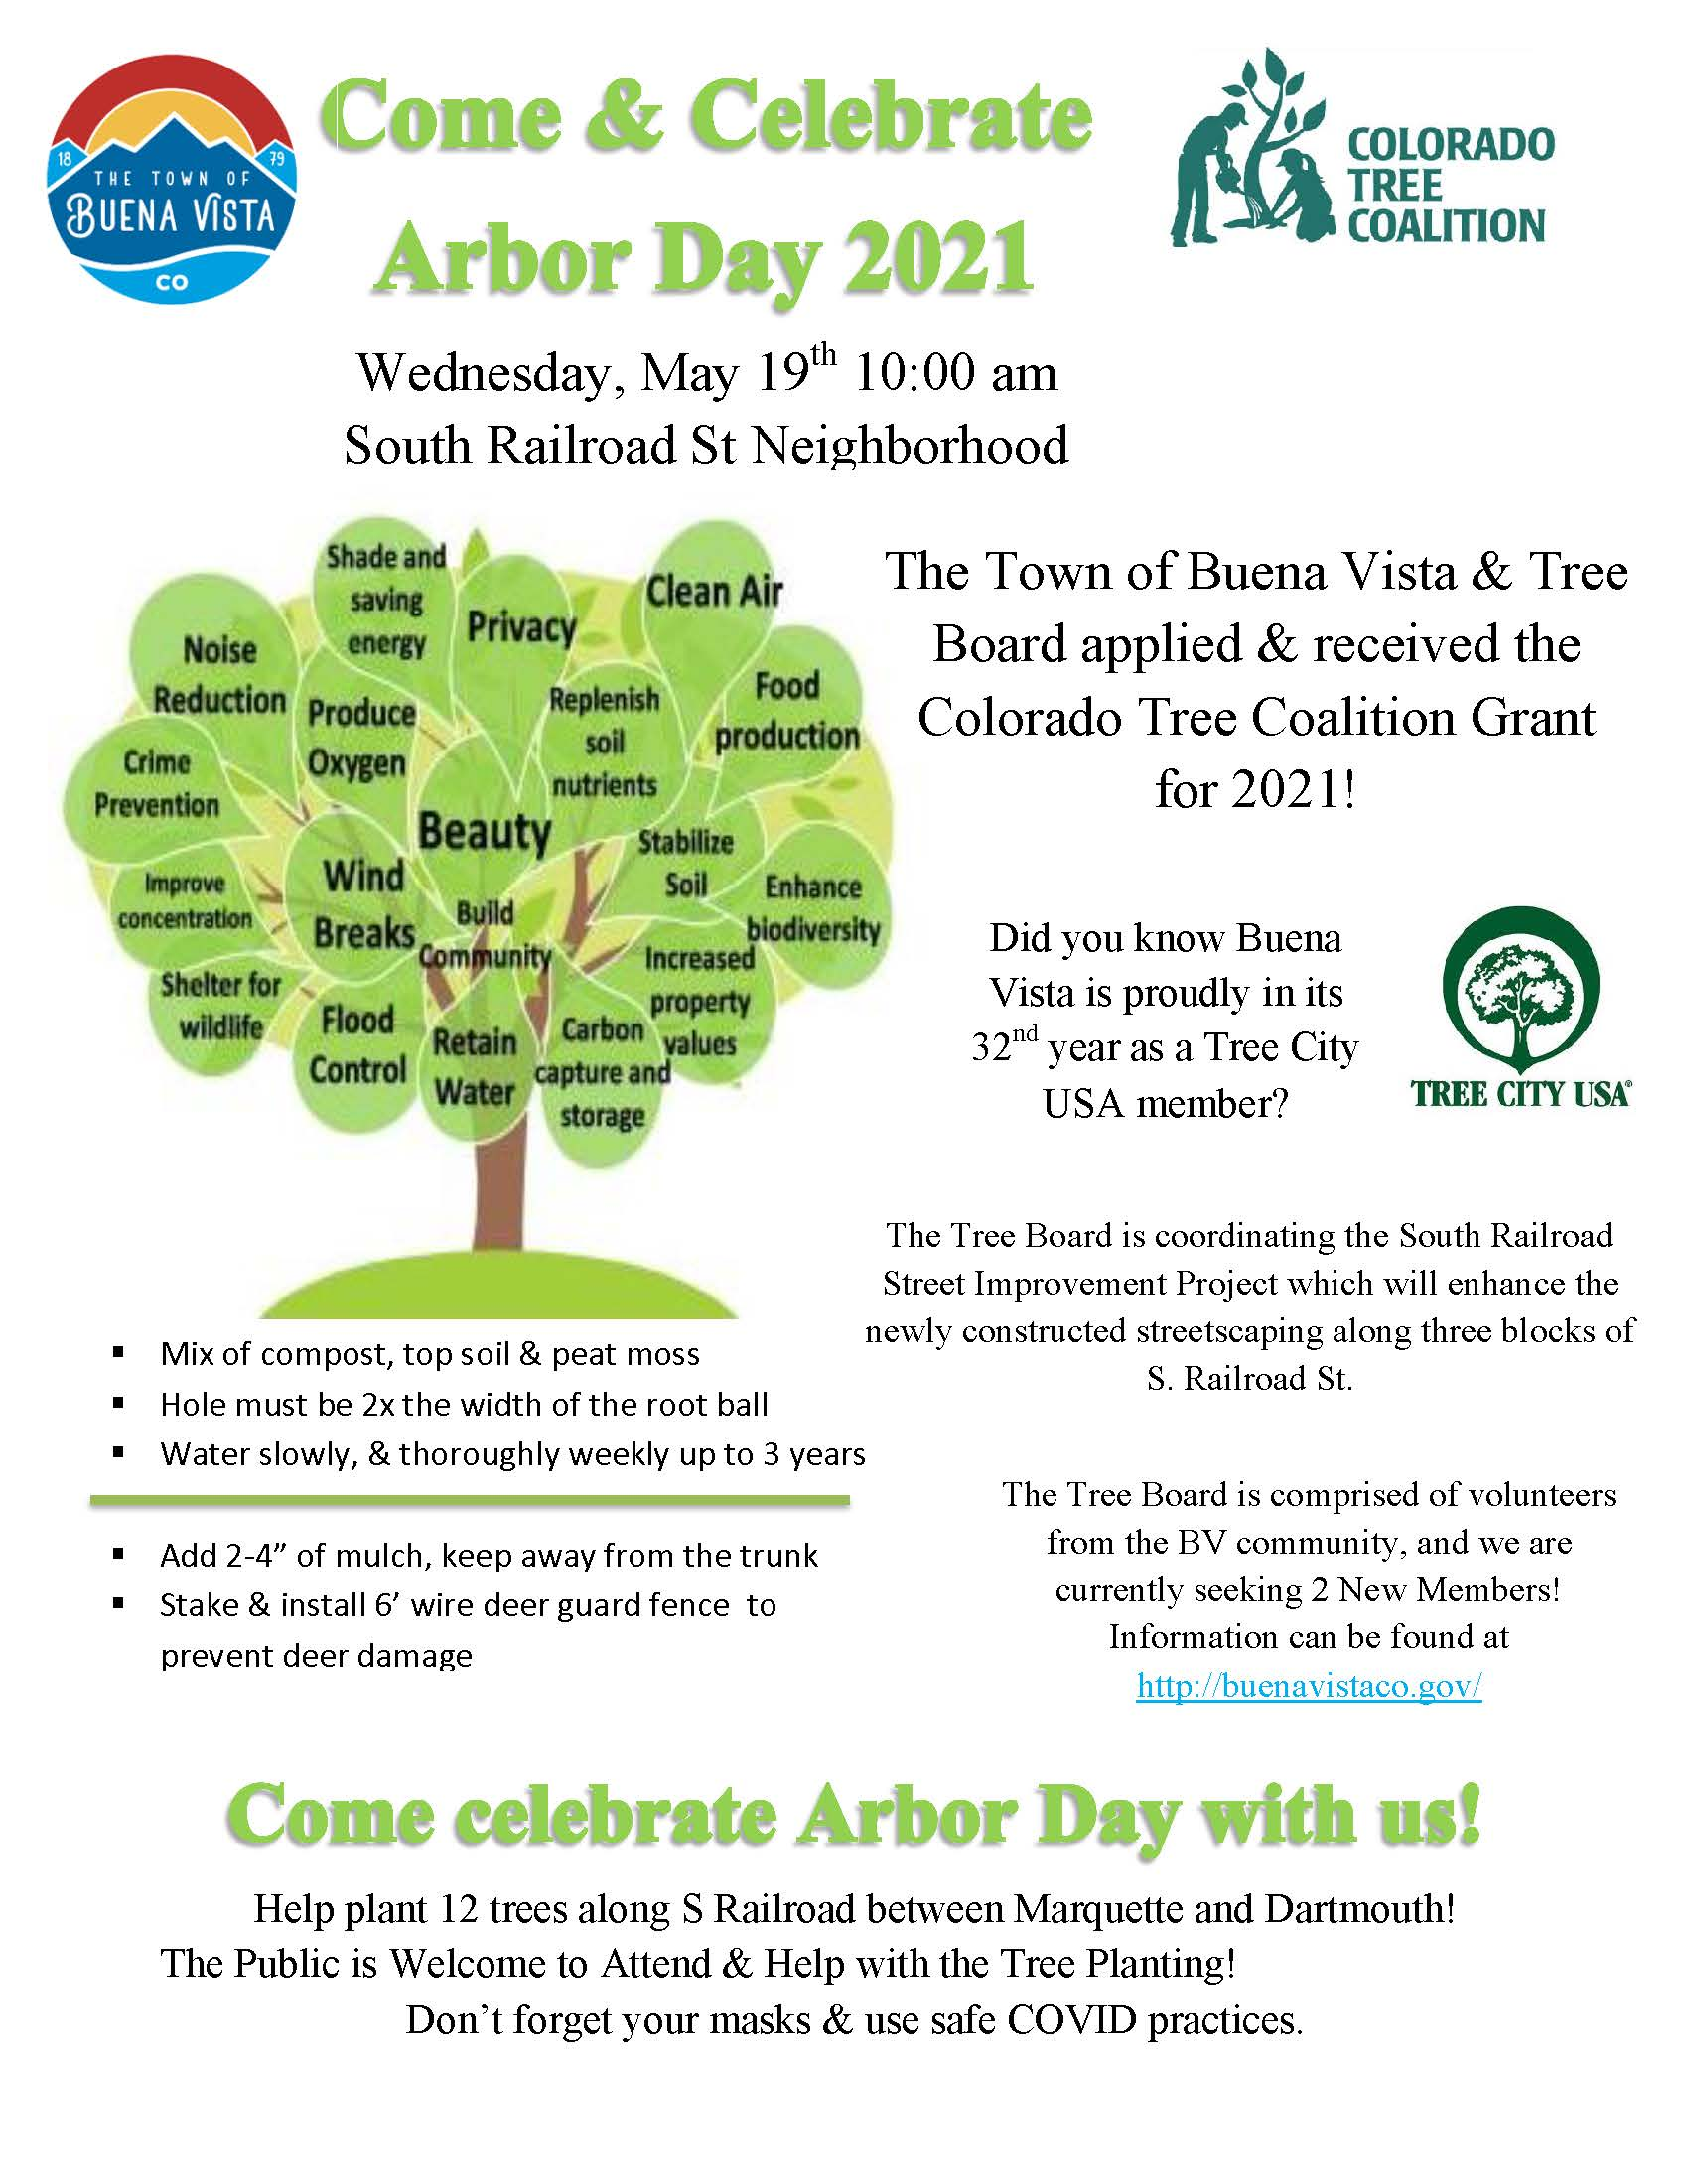 Arbor Day 2021 Celebration Flyer (PDF)